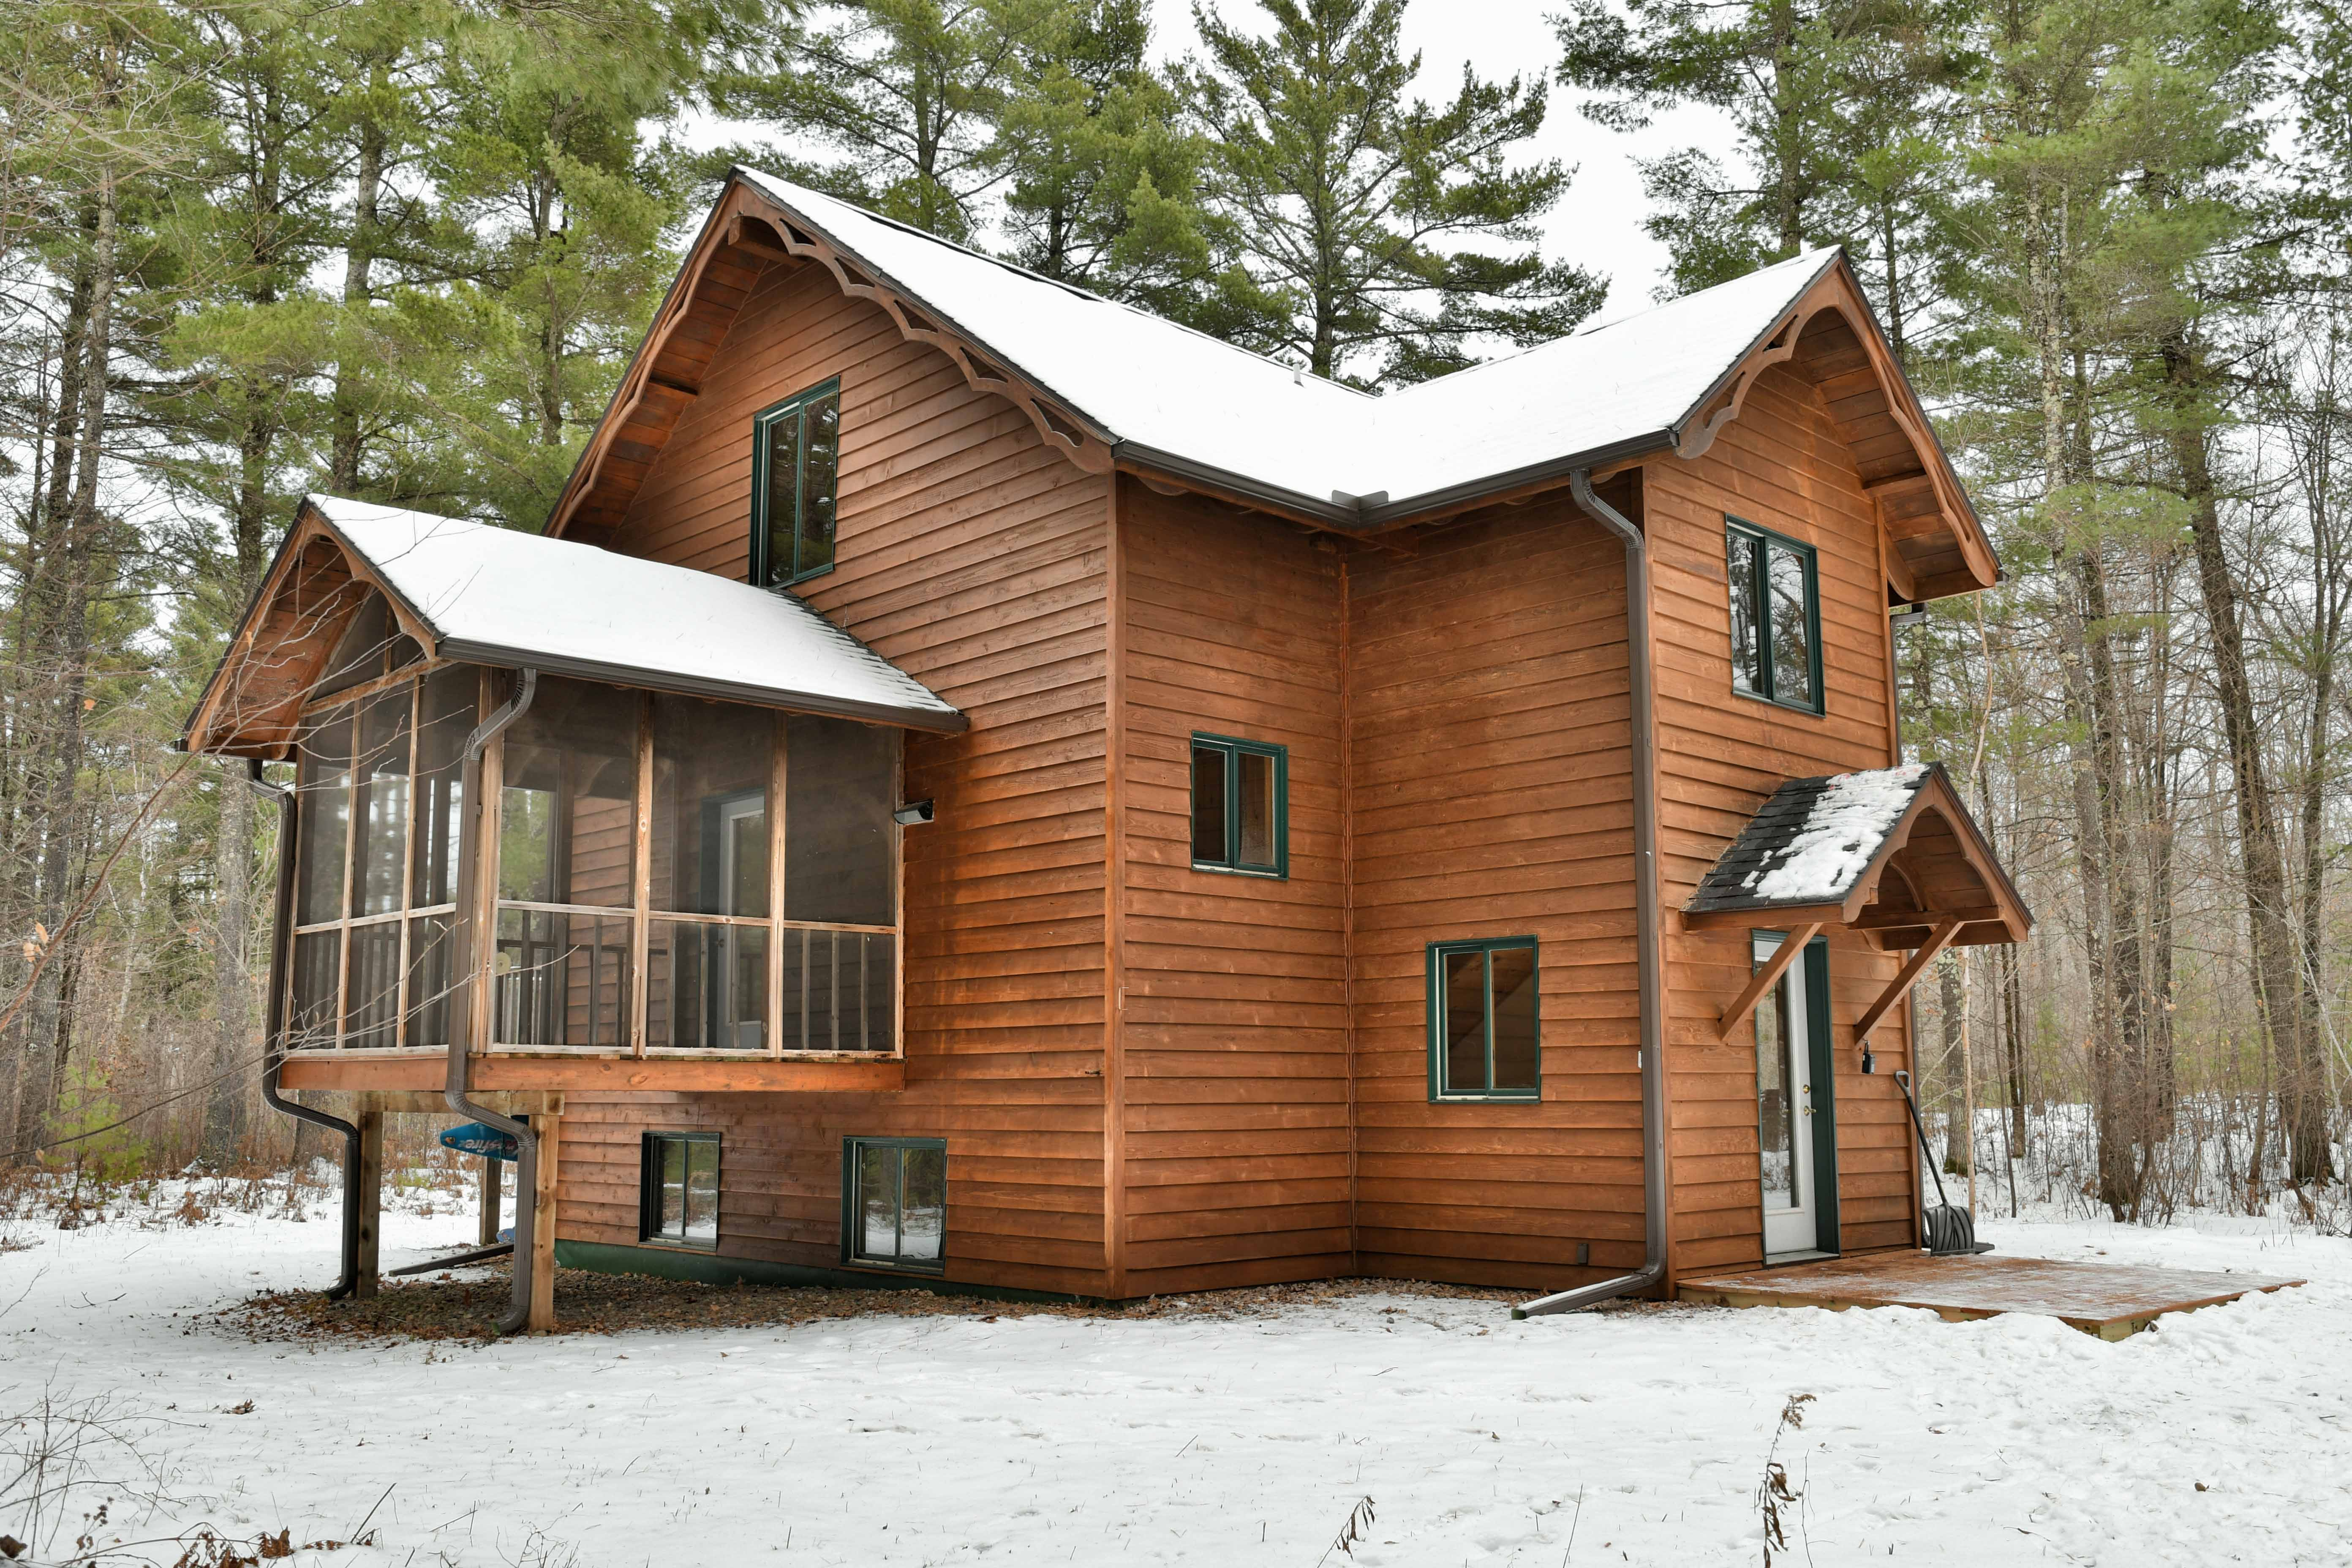 Swell Marketing Property For Sale Seeley Wisconsin Virtual Tour Download Free Architecture Designs Scobabritishbridgeorg